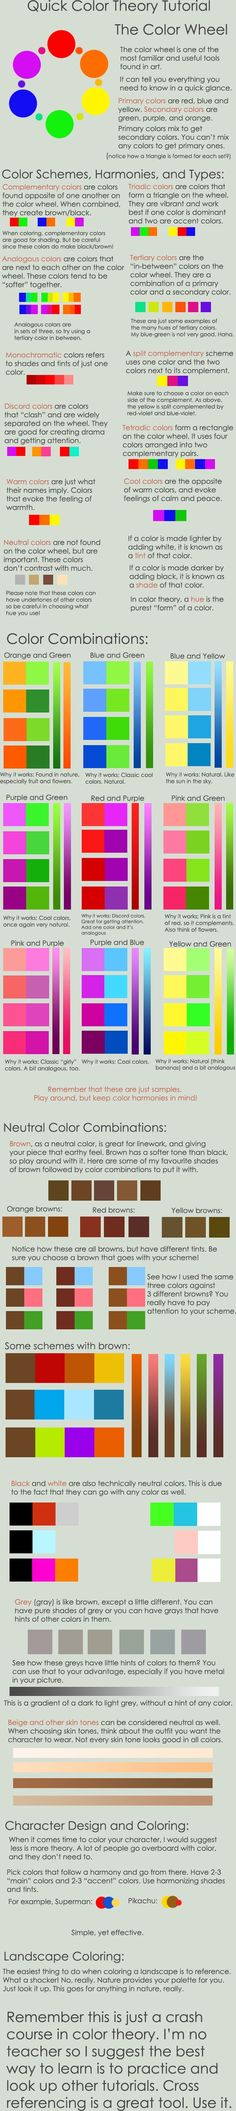 Color Theories